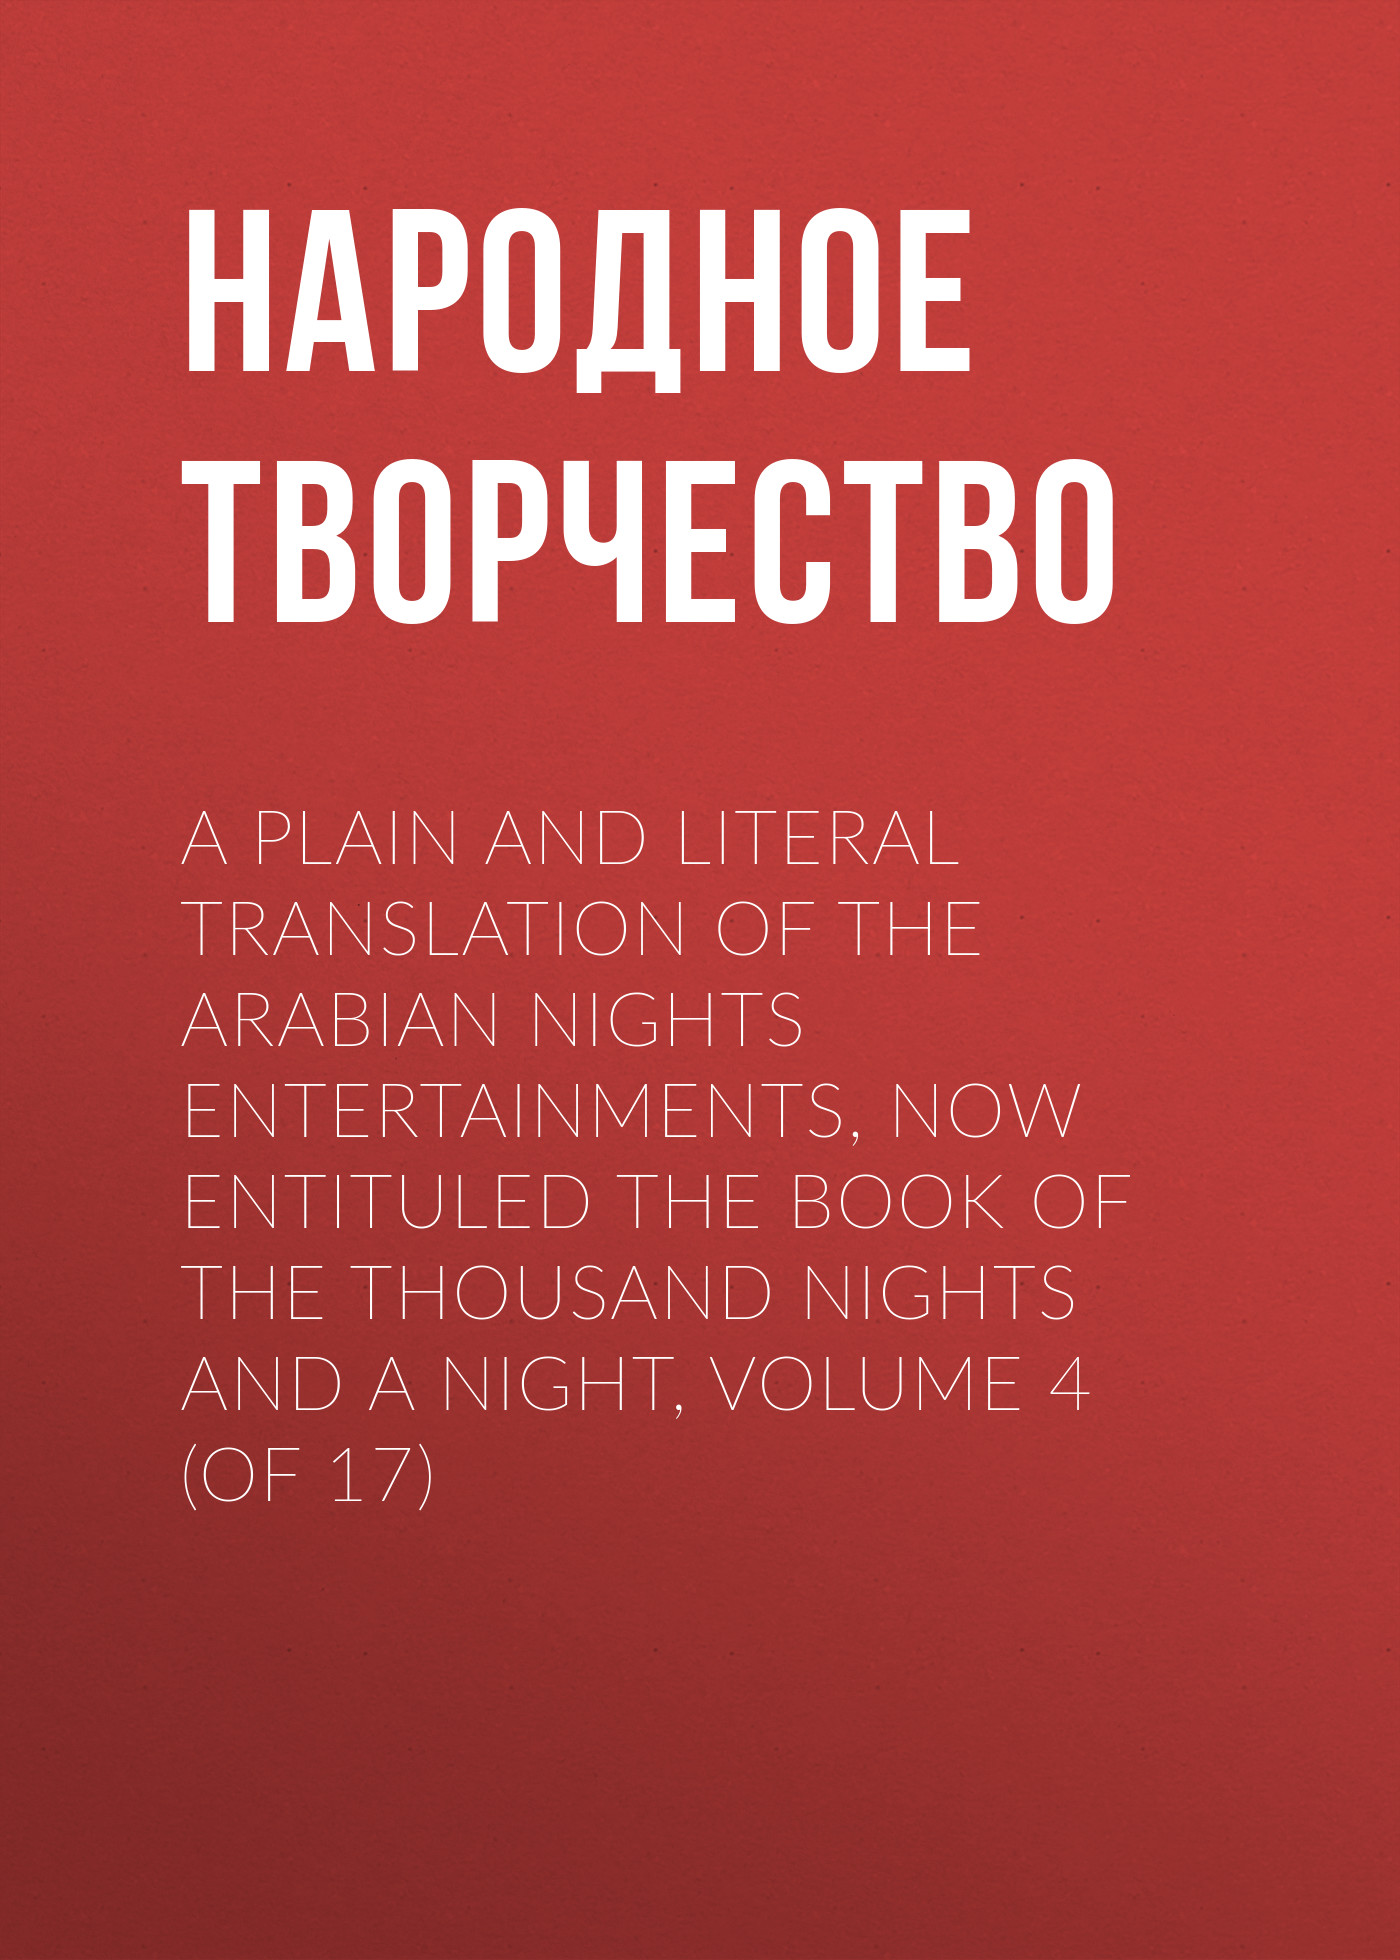 Народное творчество A plain and literal translation of the Arabian nights entertainments, now entituled The Book of the Thousand Nights and a Night, Volume 4 (of 17) rockwell a night of legendary collaborations